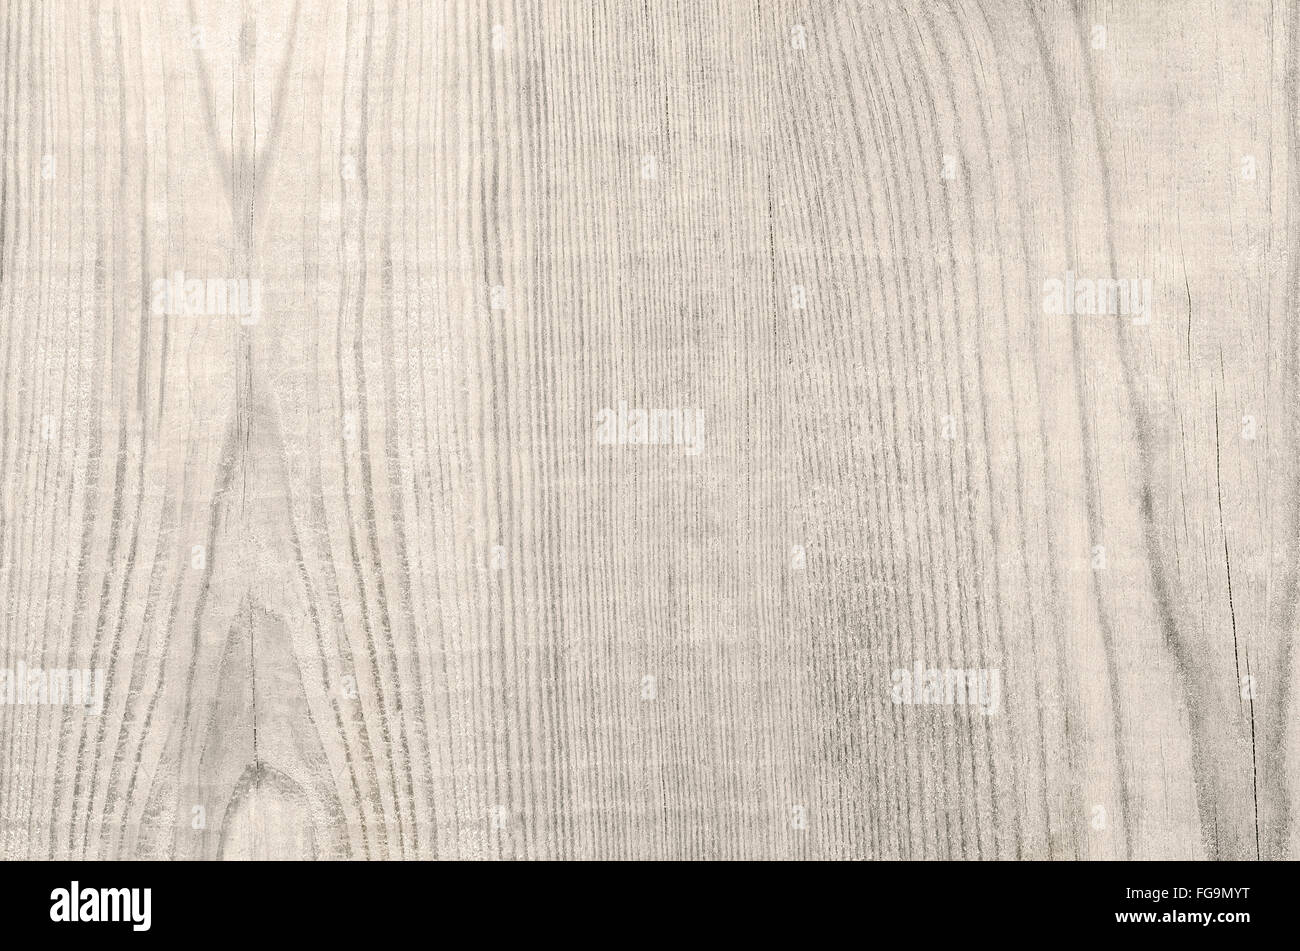 Wooden background, cut planks - Stock Image